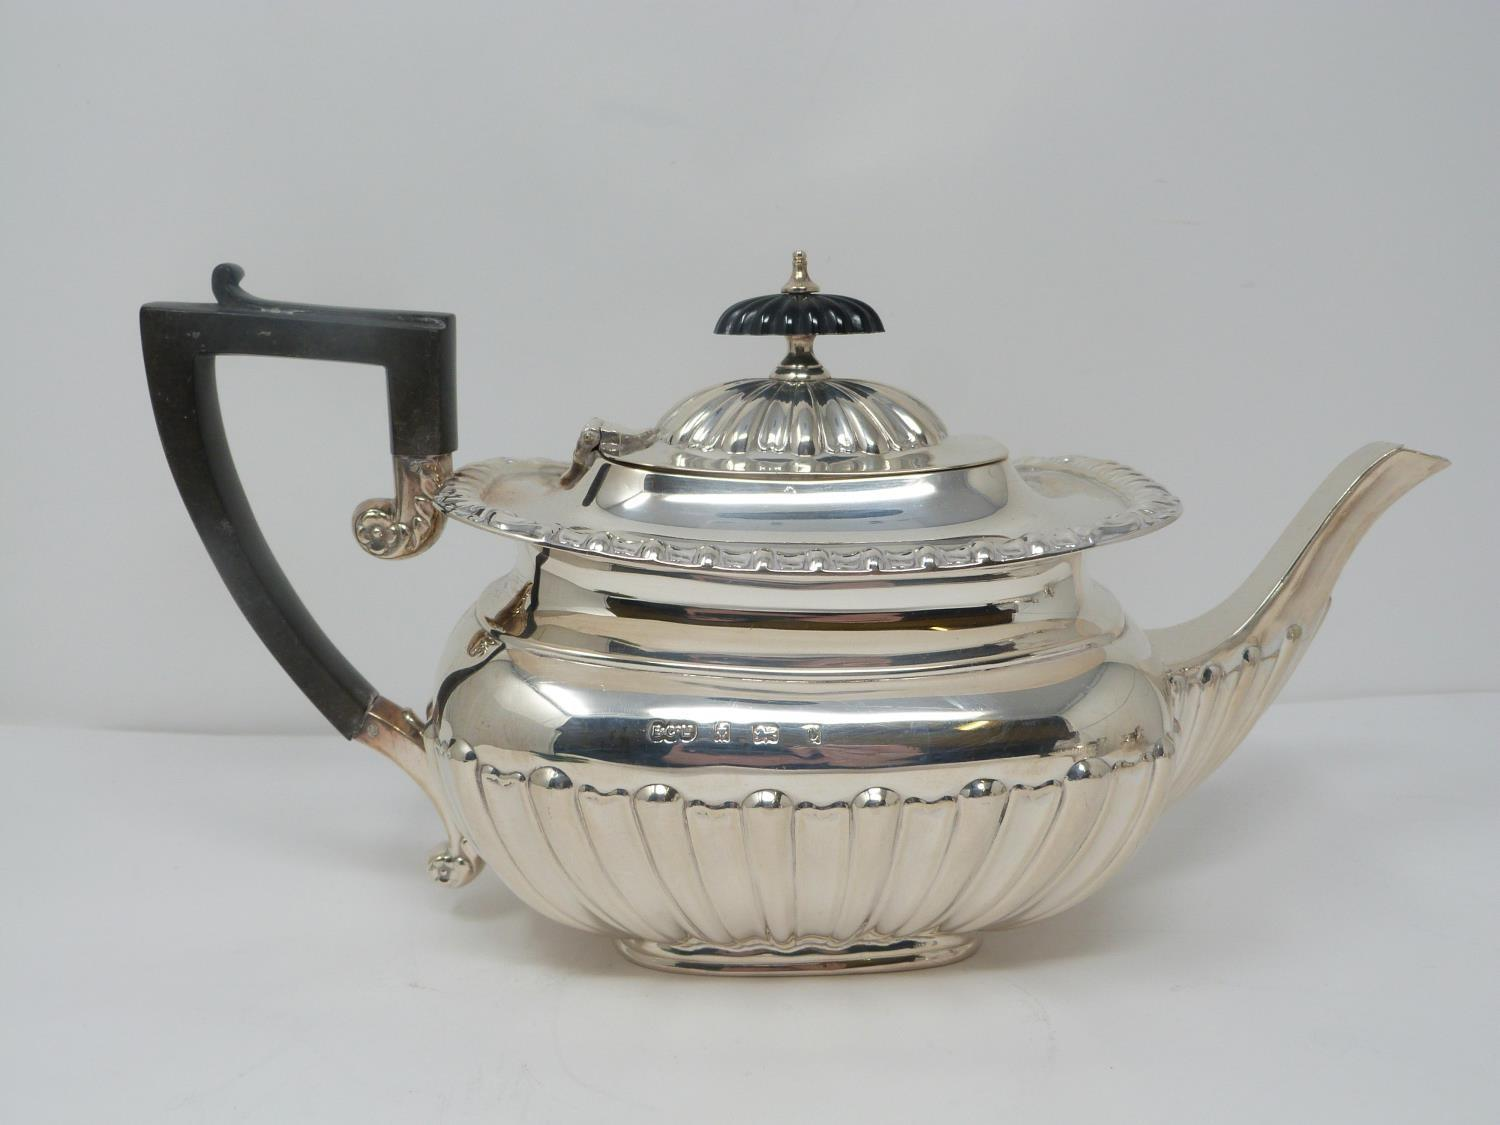 An Elkington and Co. silver three piece tea service, includes a teapot, sugar bowl and milk jug. - Image 2 of 12